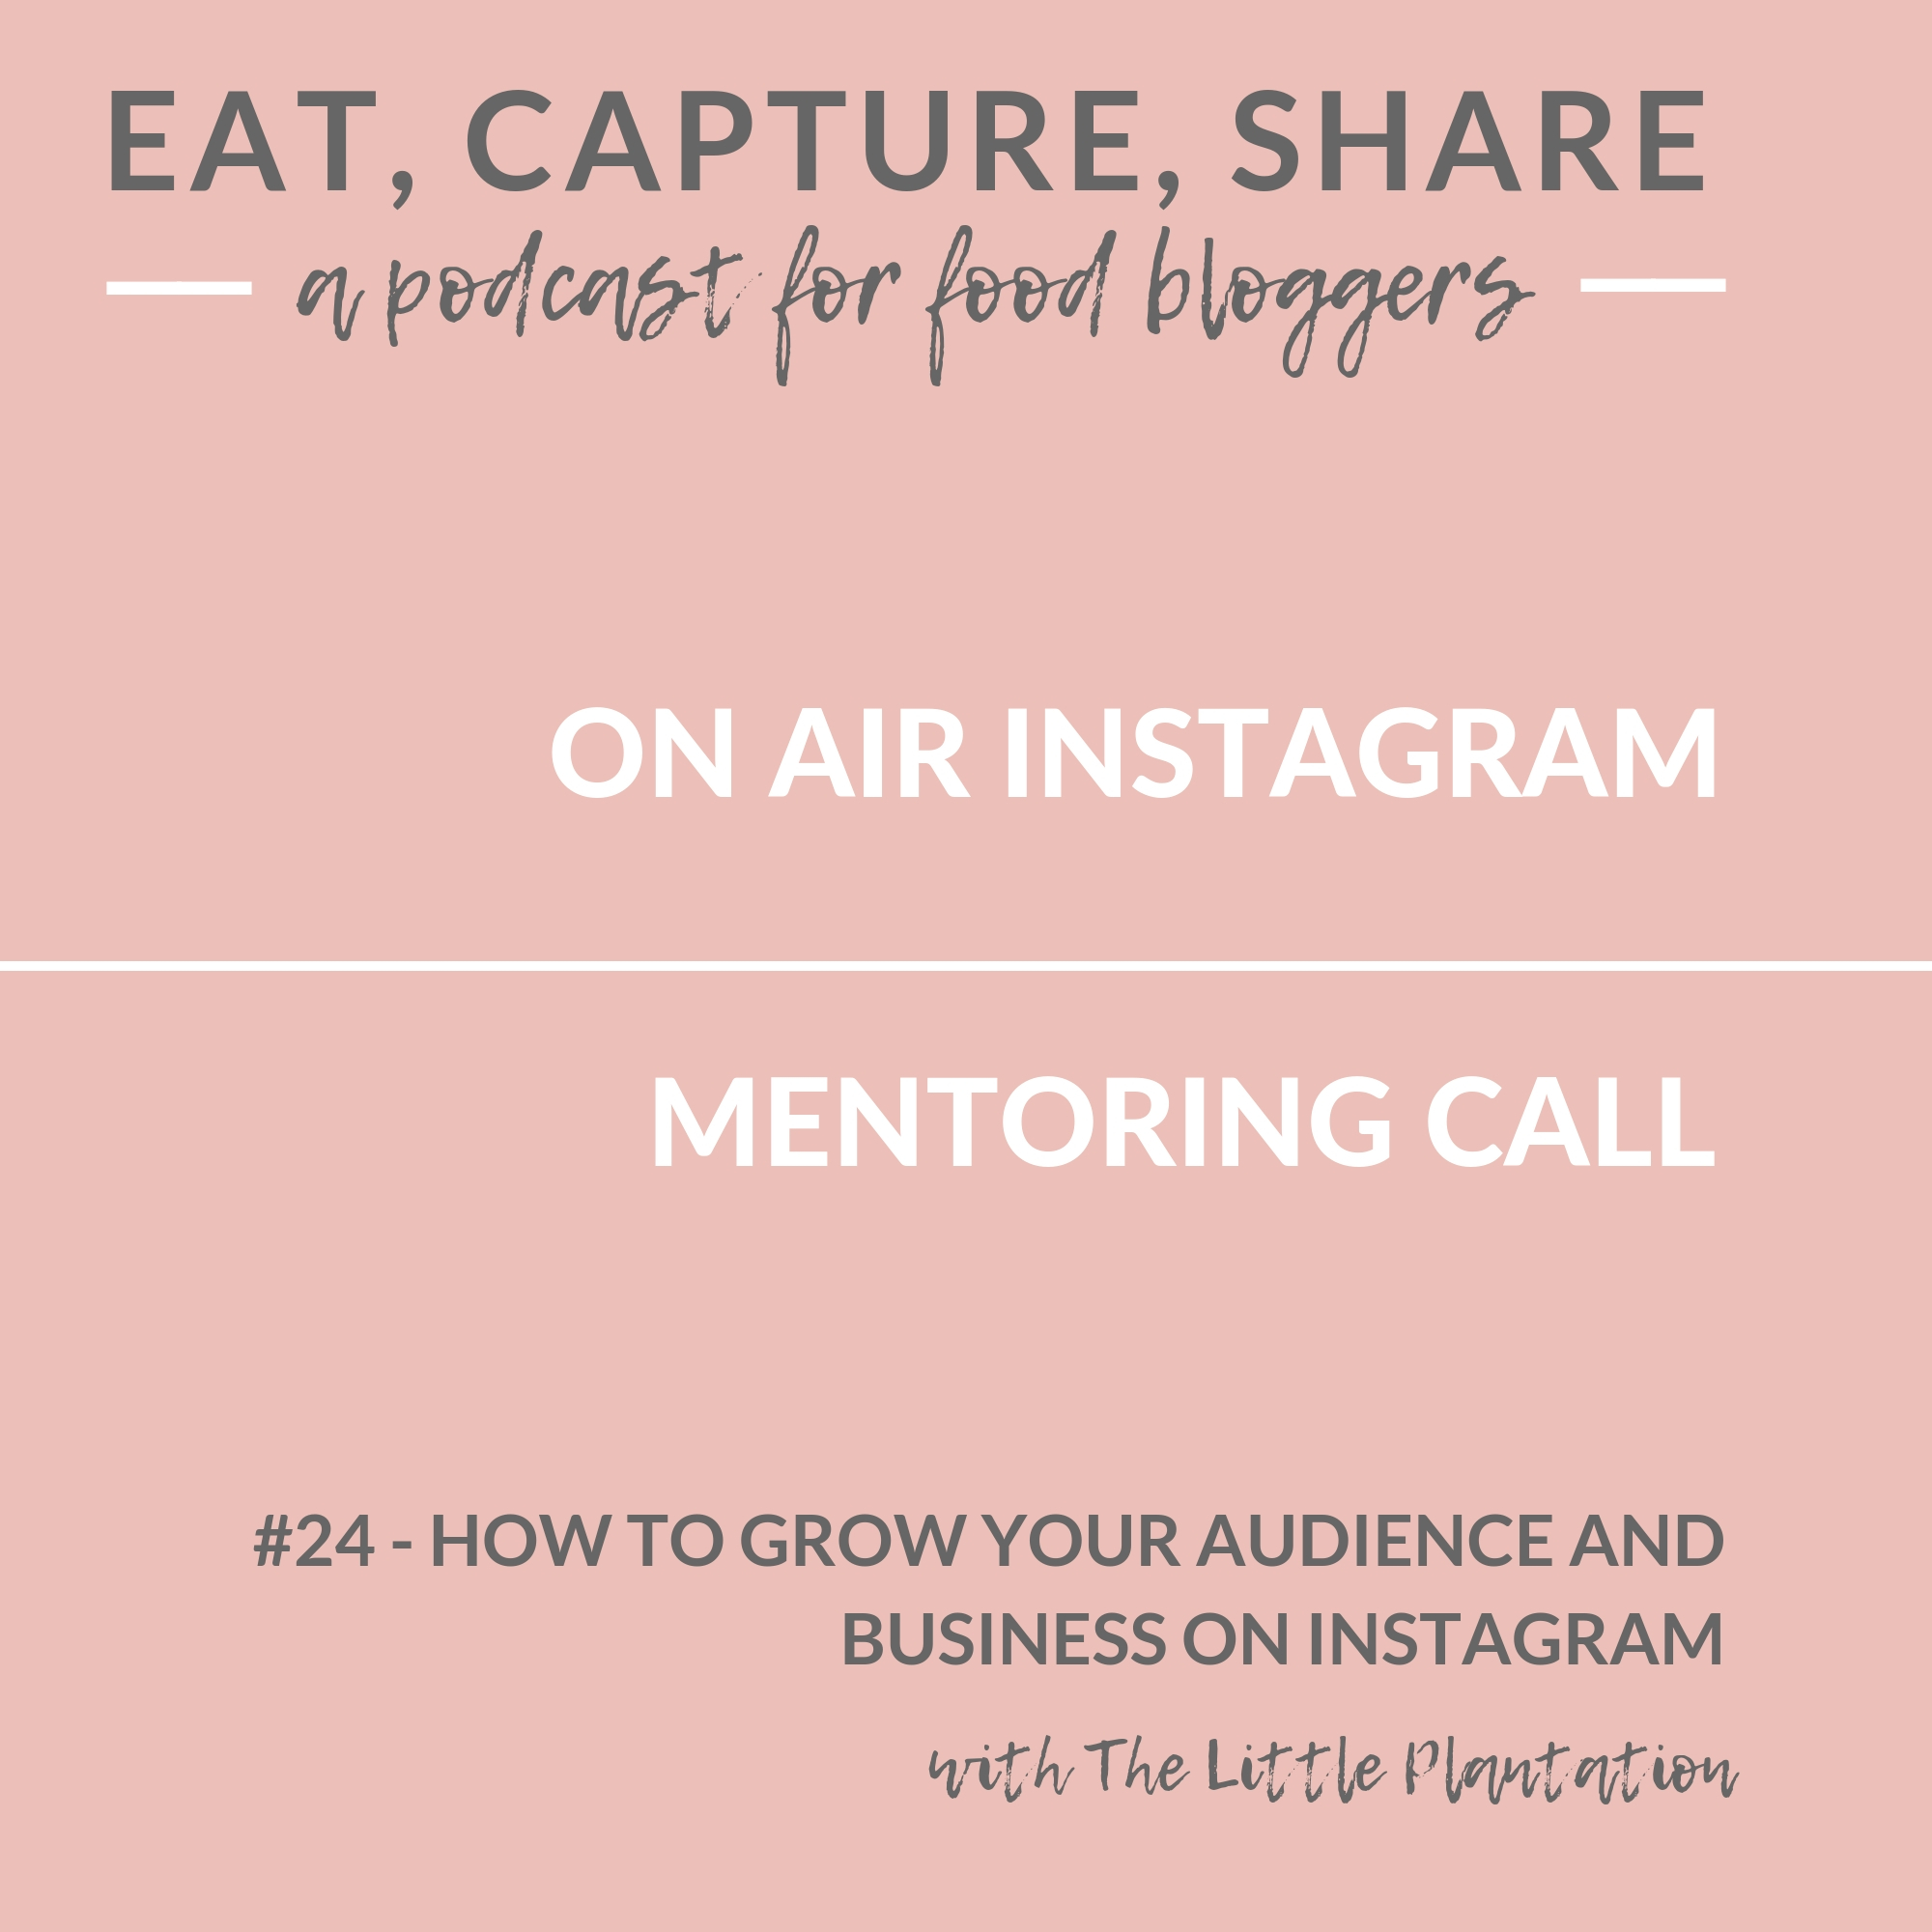 How to grow your instagram audience and business through social media - Eat, Capture, Share - a podcast for food bloggers